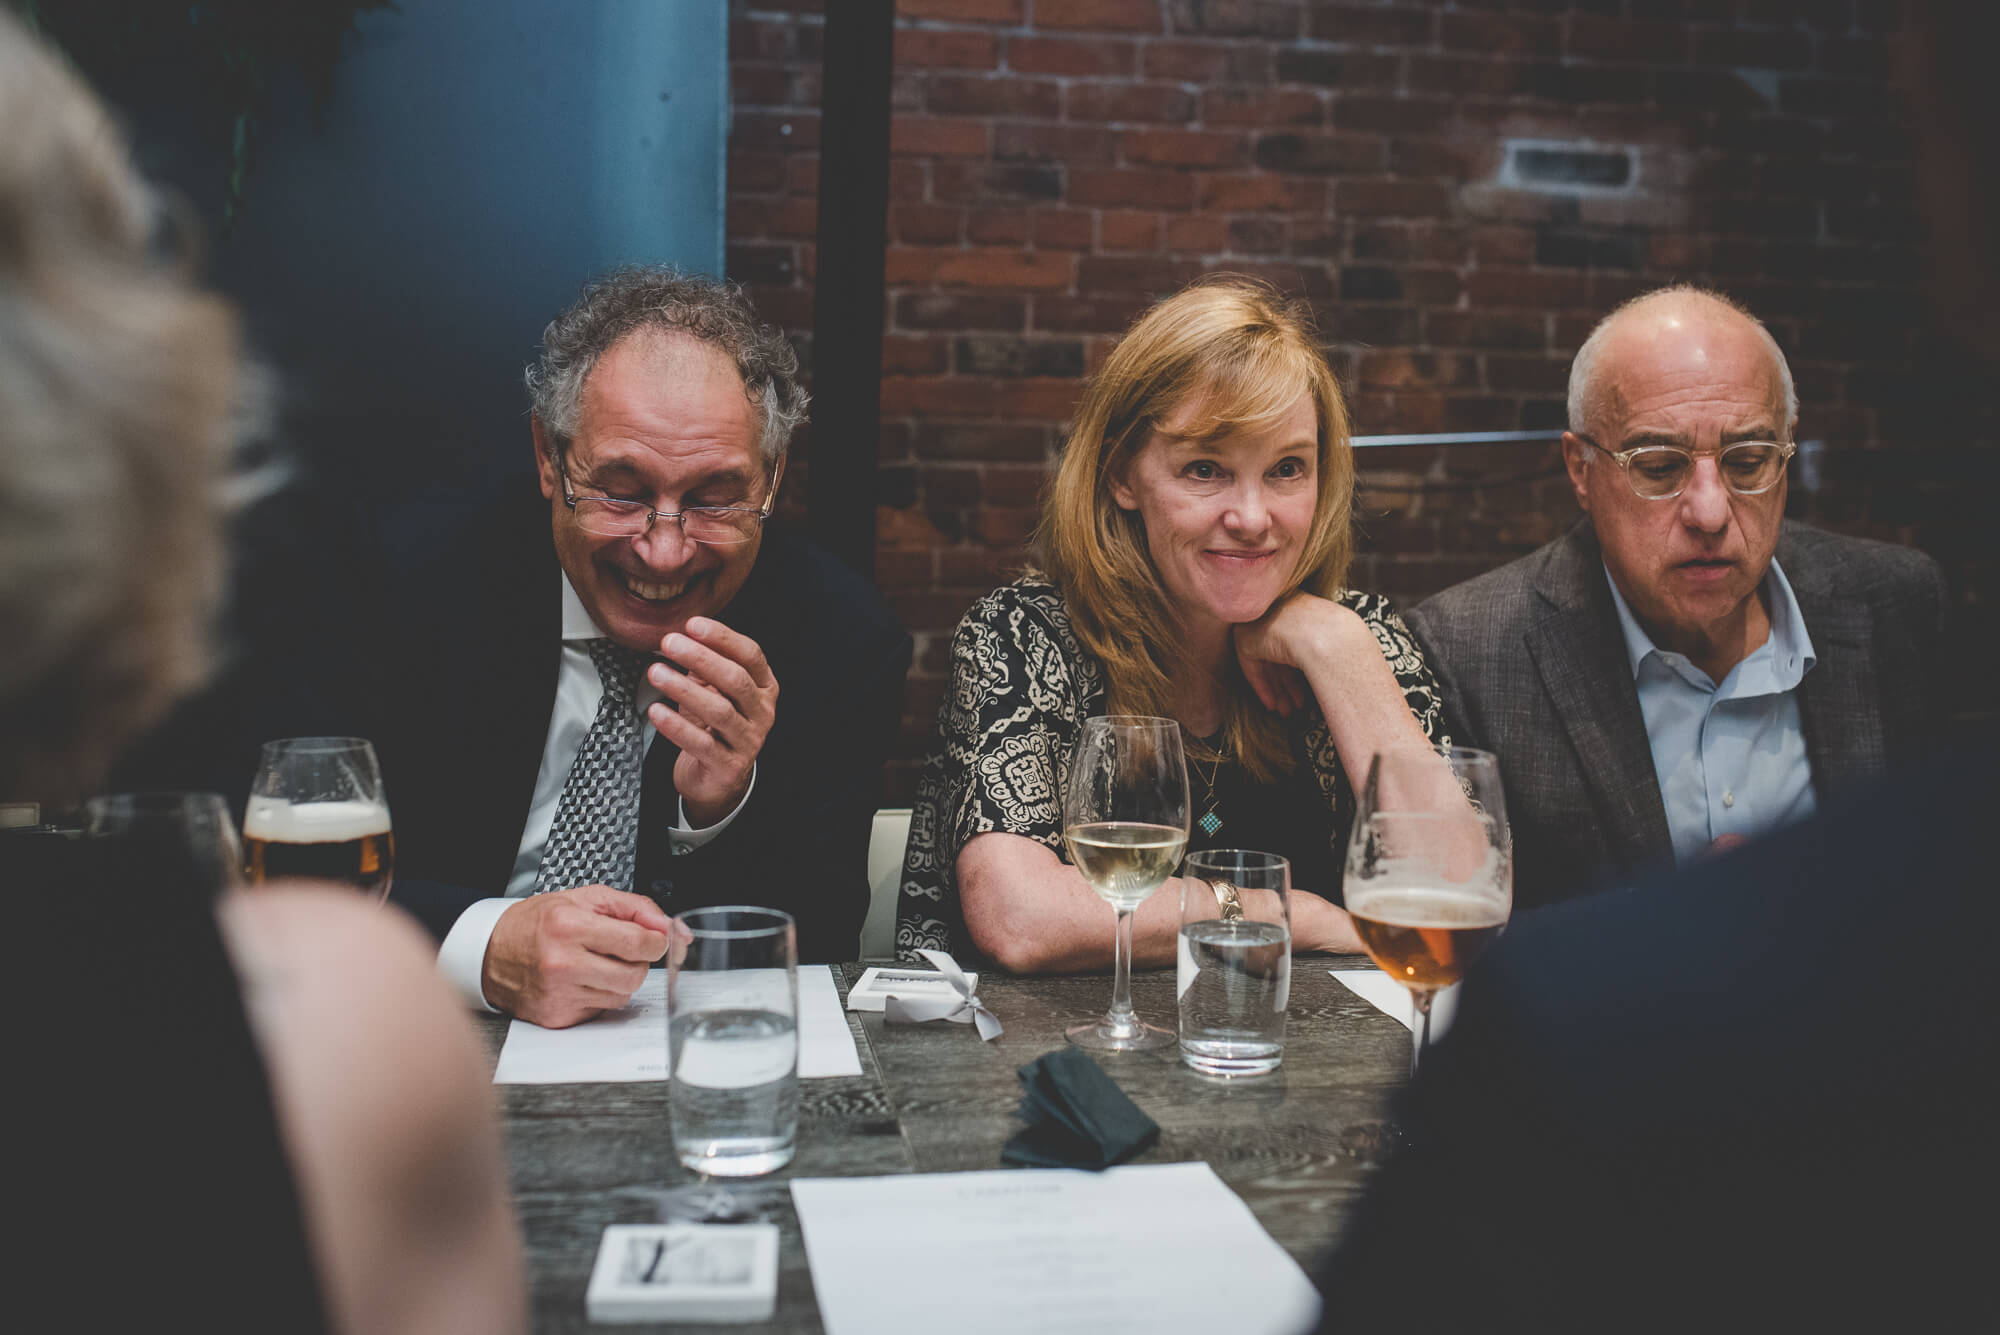 guests laughing over beer and wine at wedding reception